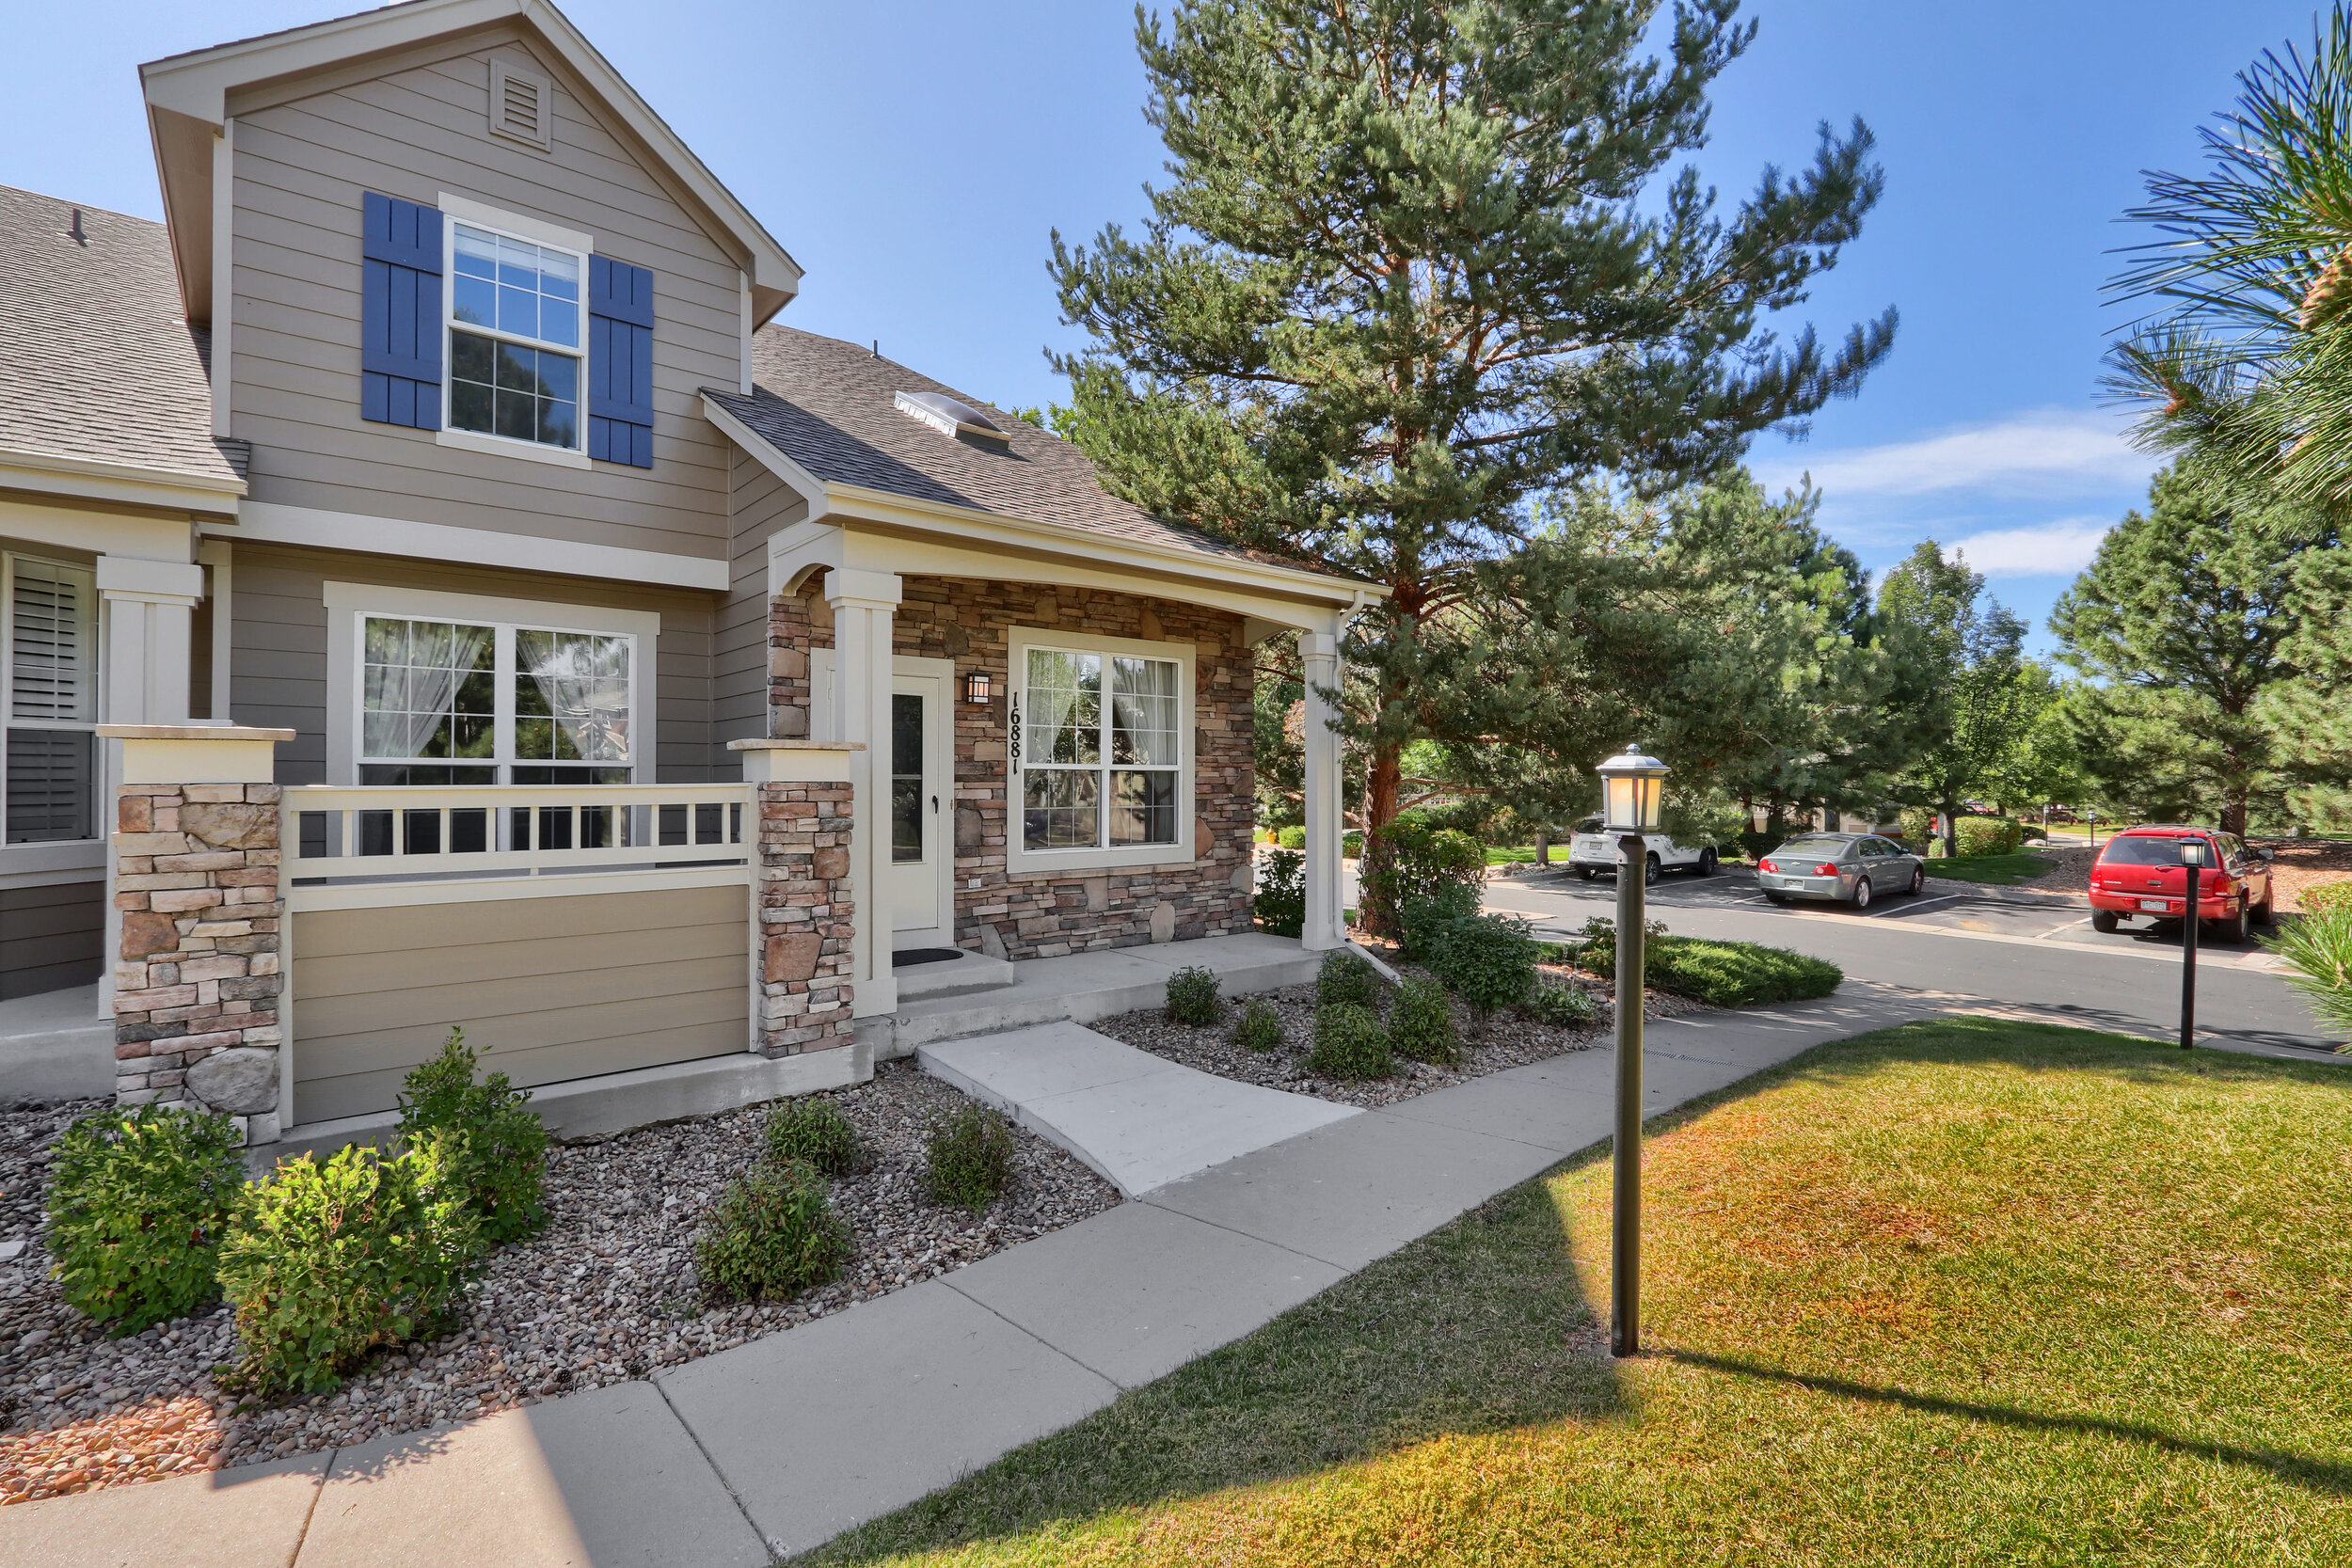 16881 W 63rd Place Arvada CO-print-002-002-Exterior Front-4200x2801-300dpi.jpg